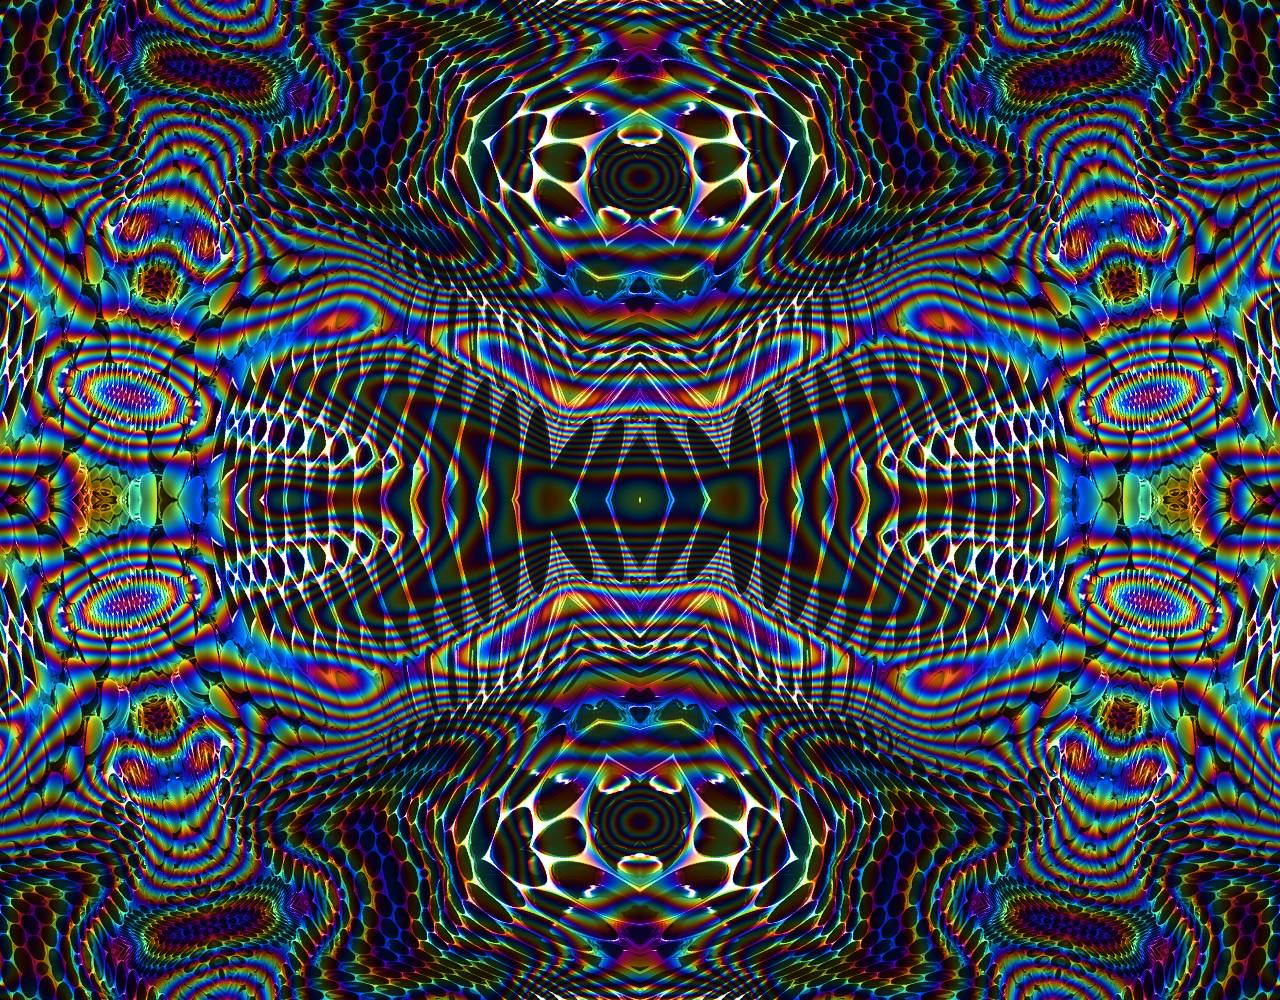 500 Trippy Wallpapers amp Psychedelic Backgrounds HD [NEW] 1280x1000